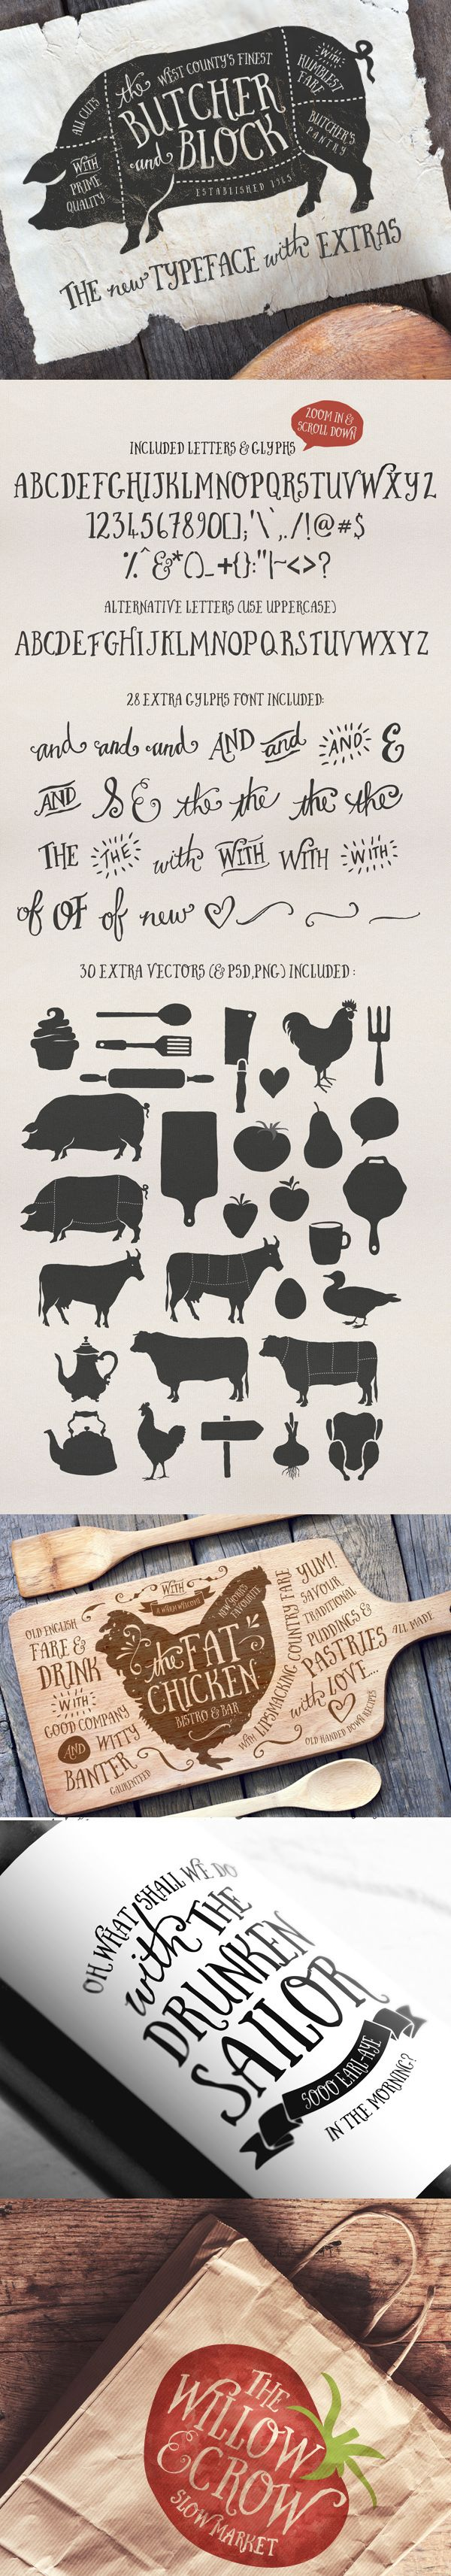 Butcher and Block font + Extras by Nicky Laatz, via Behance